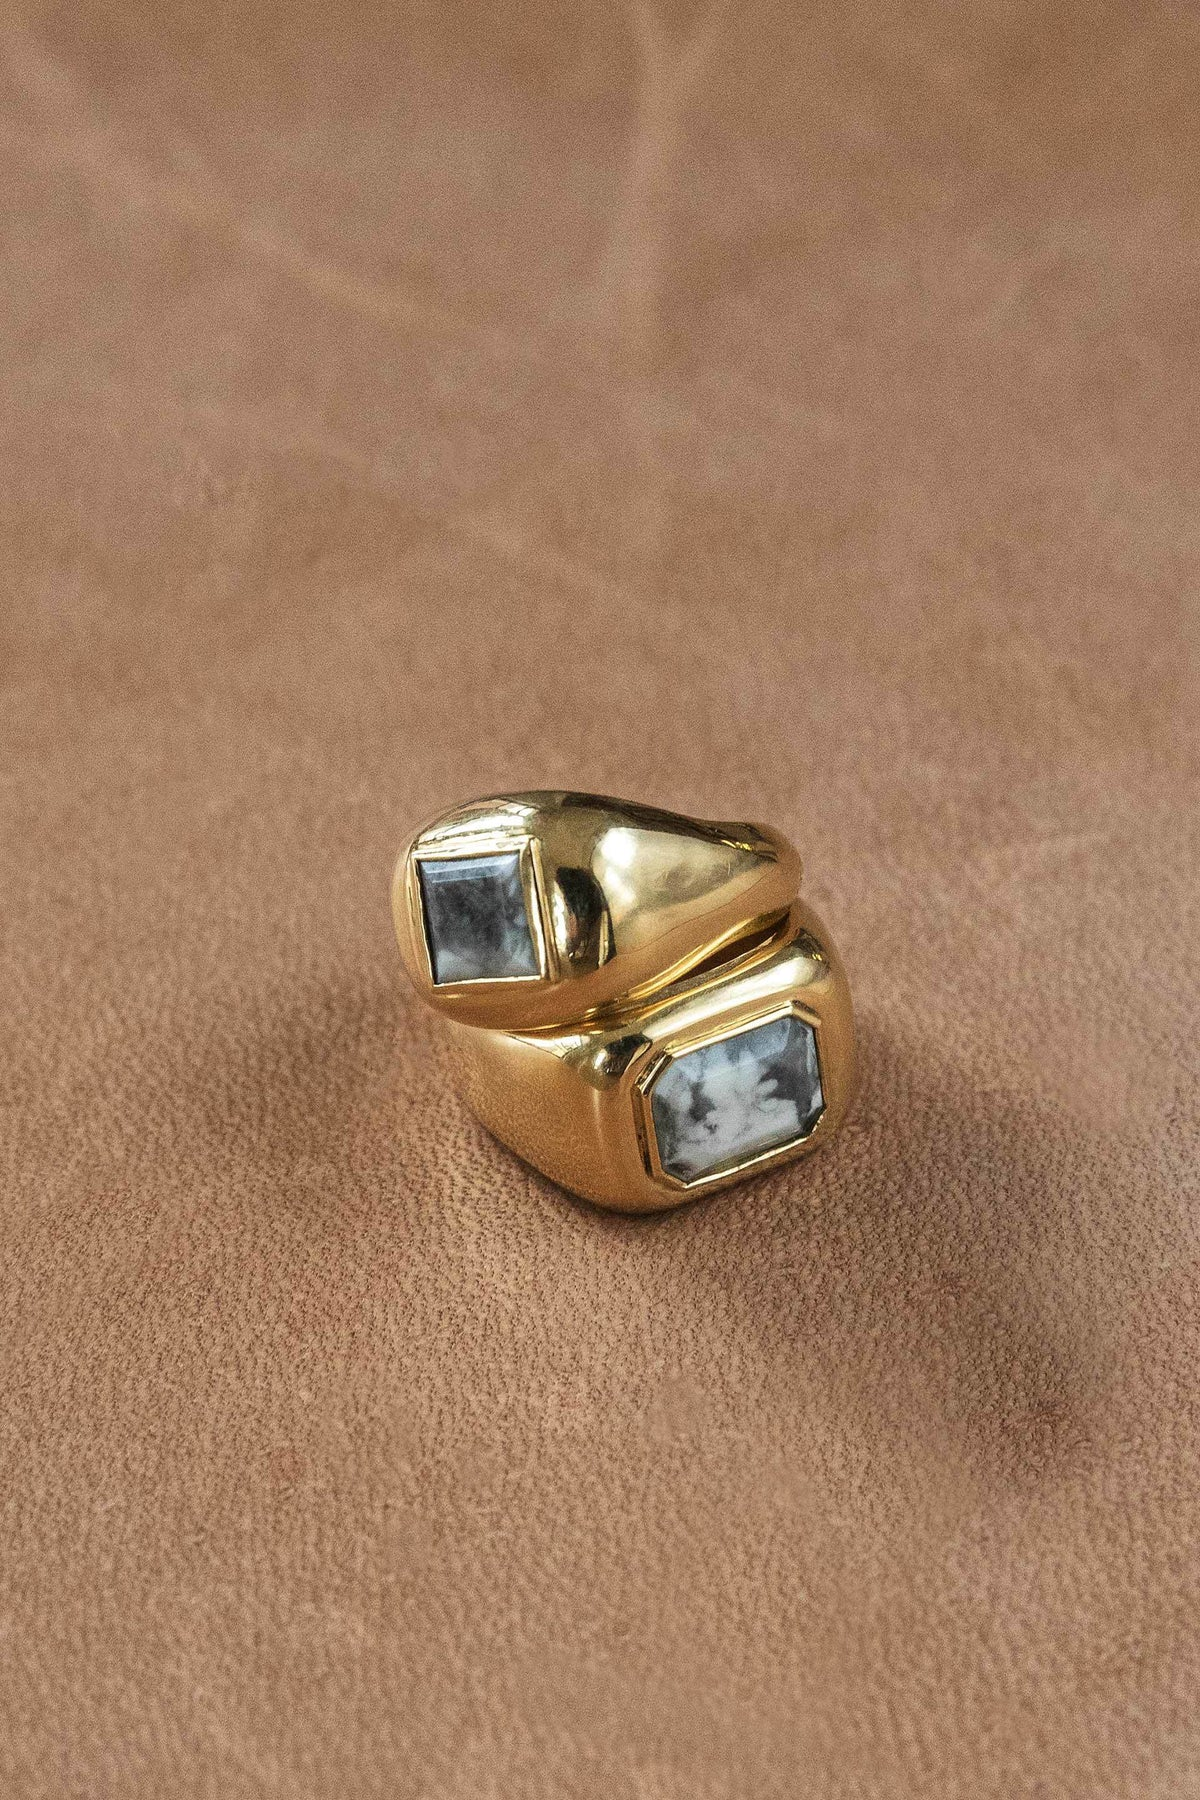 Medium Ring 18k Gold